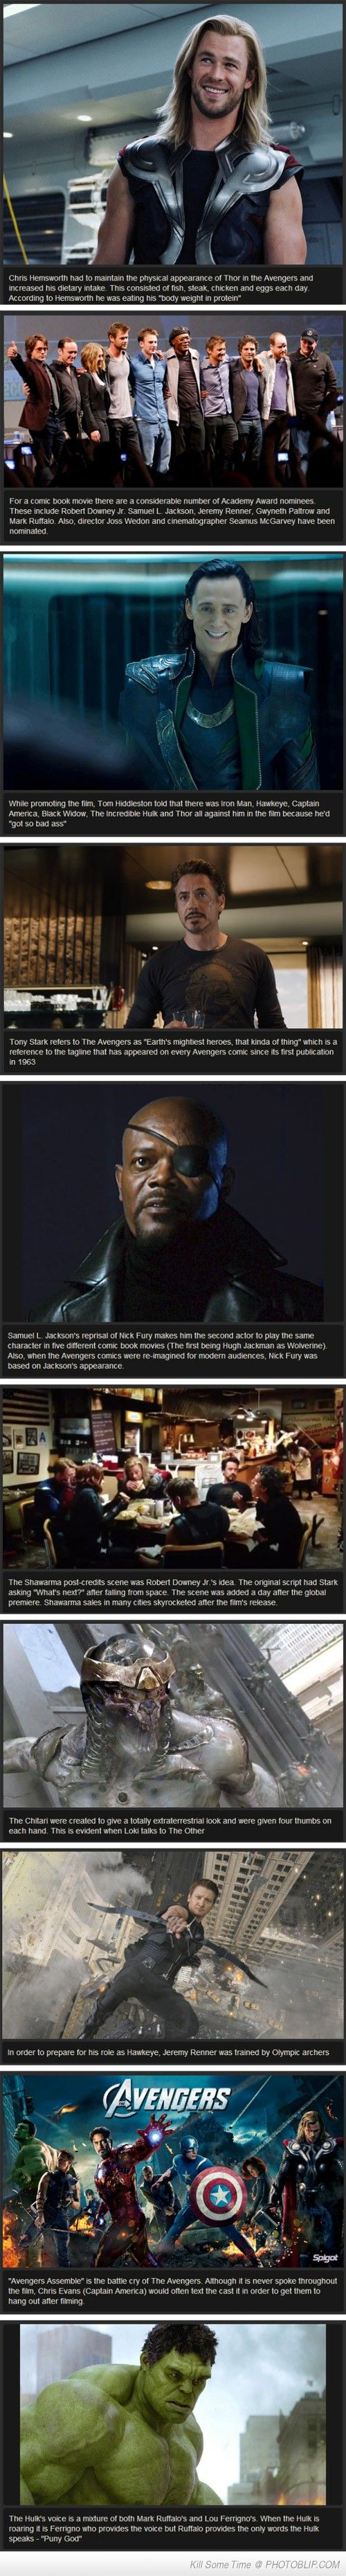 Avengers Facts